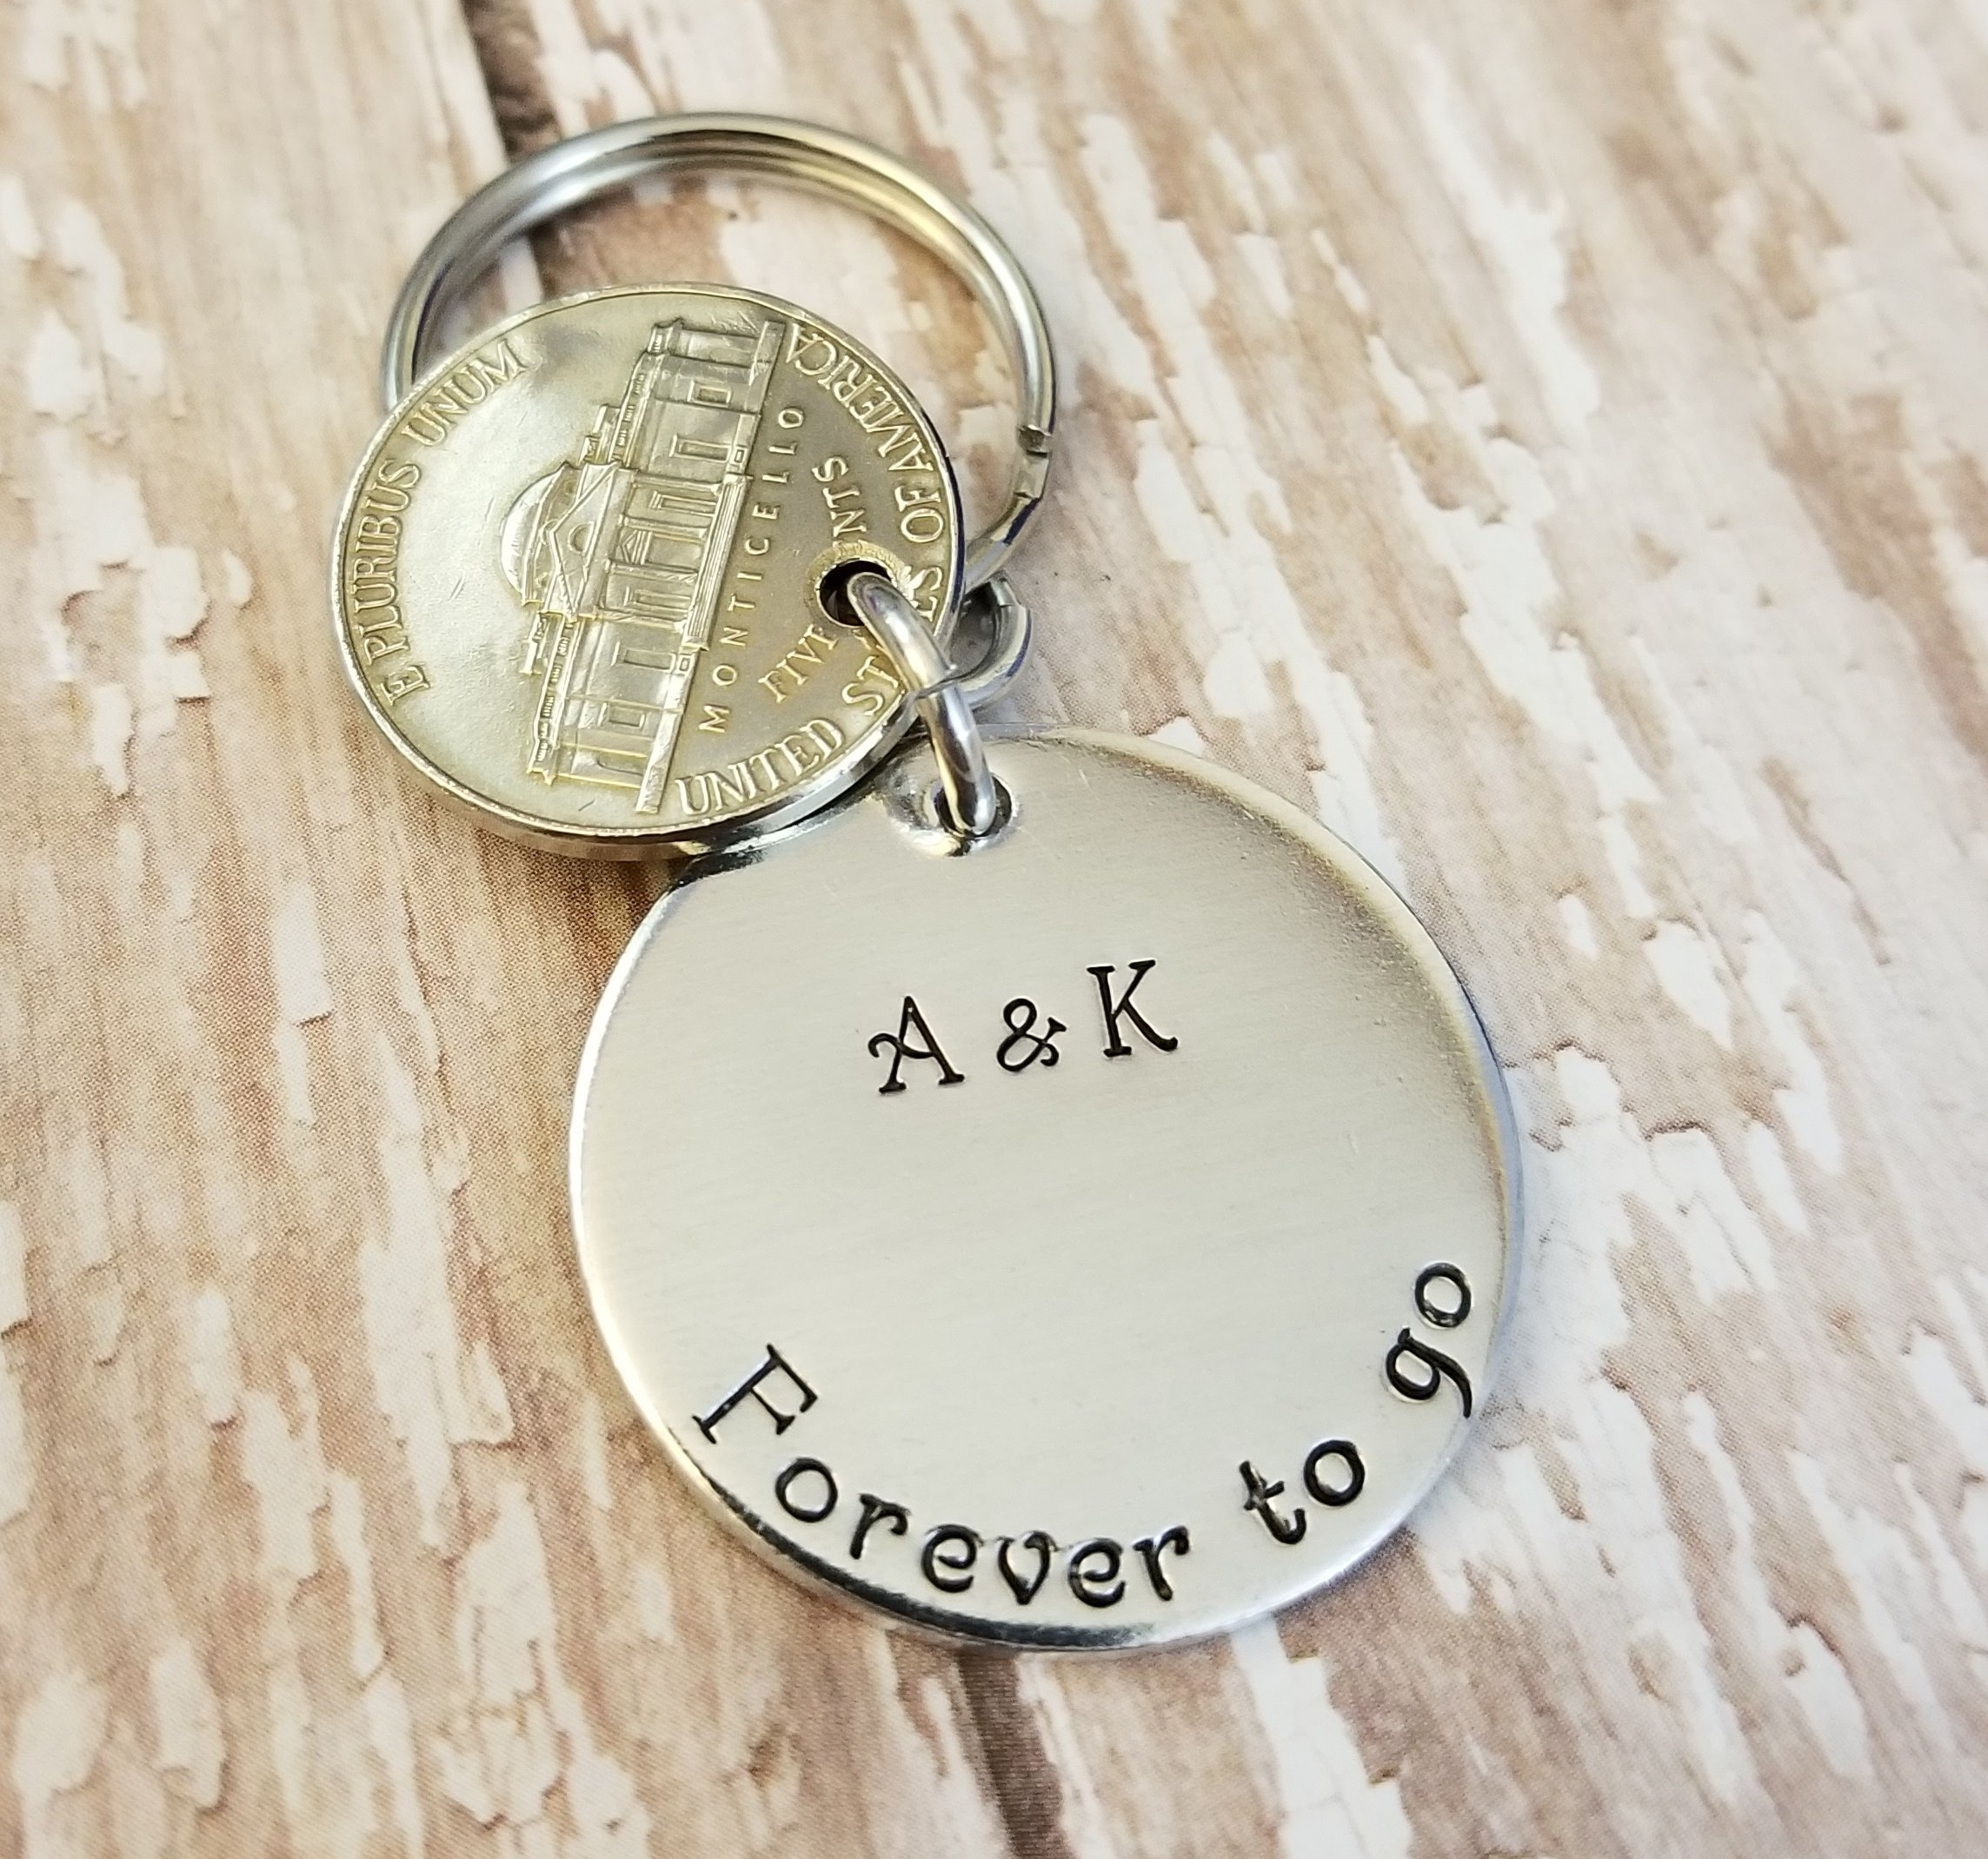 6 Down Forever To Go 2012 Year Nickel and Lucky Penny Key Chain 6th Anniversary Gift by Tucker's Trinkets And Treasures